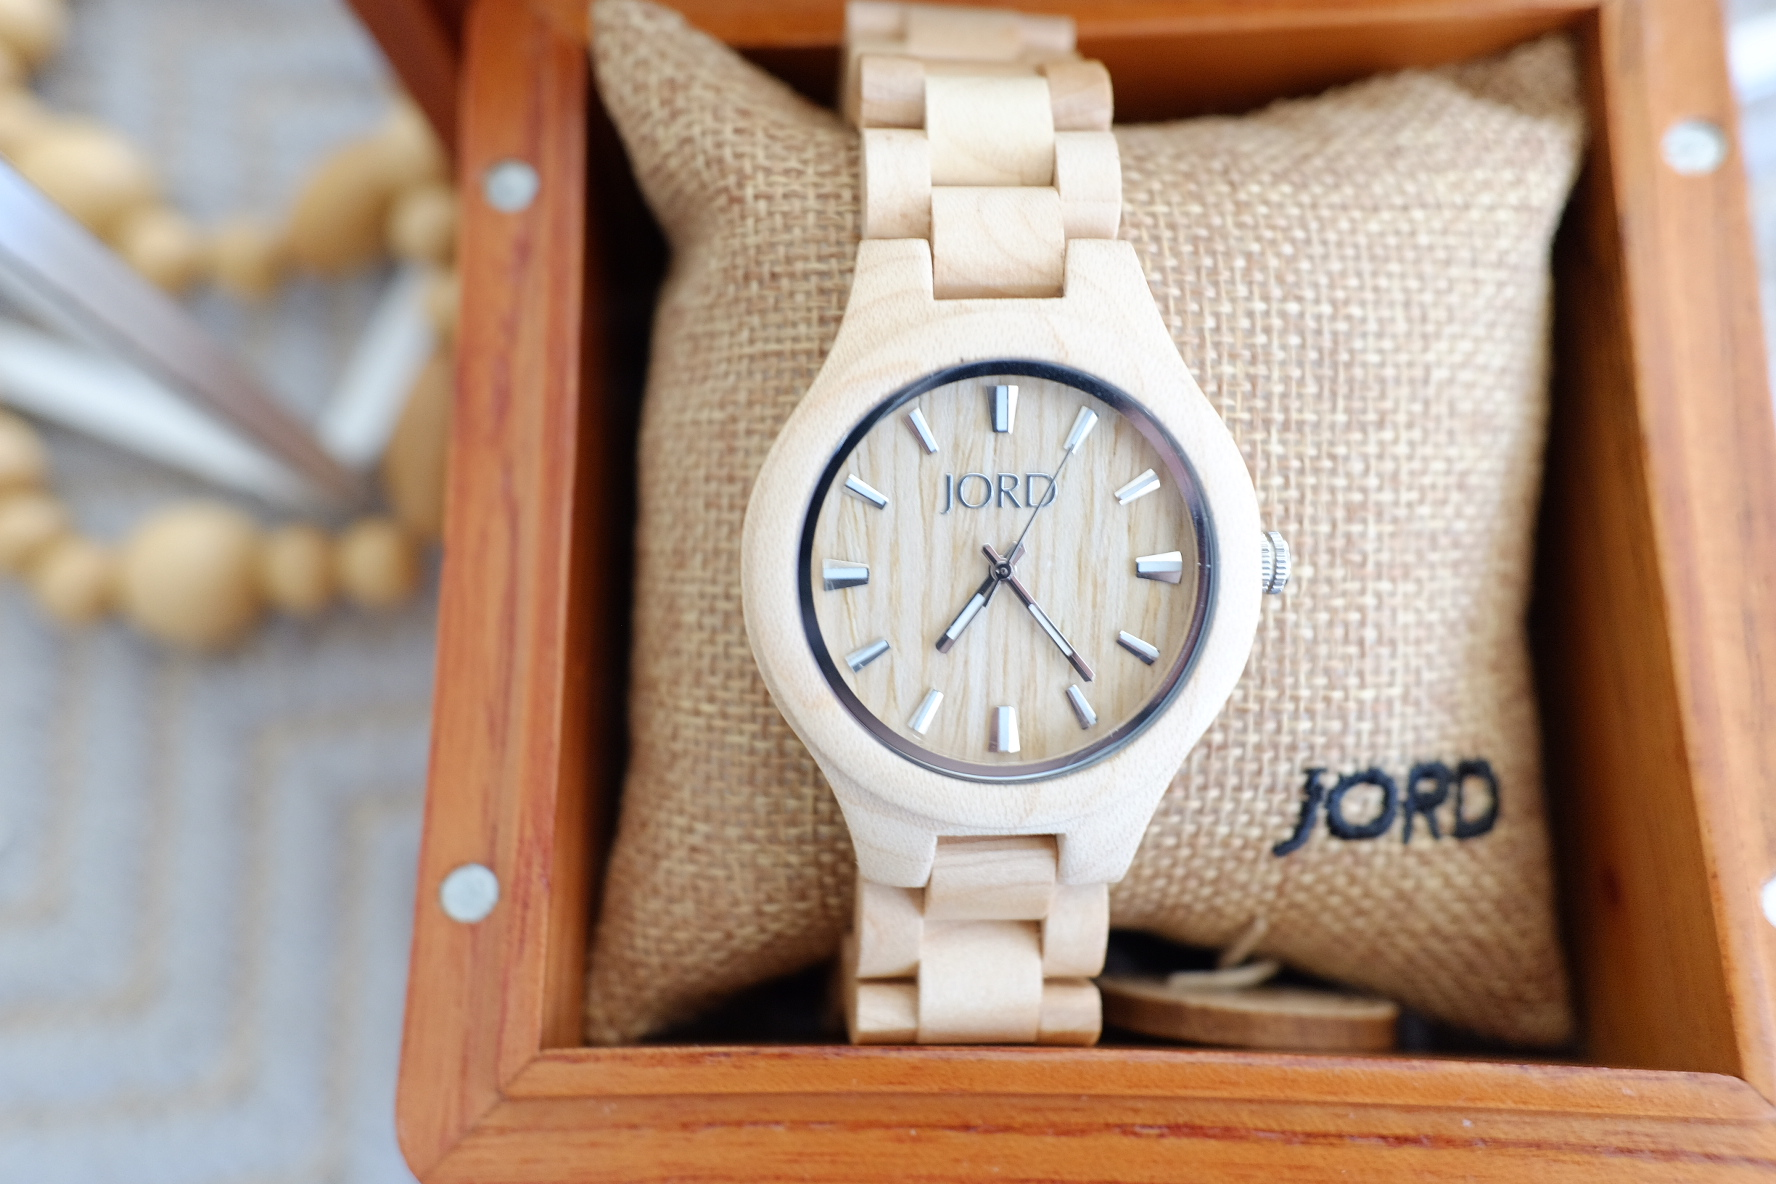 Such beautiful packaging! I love this  JORD watch!